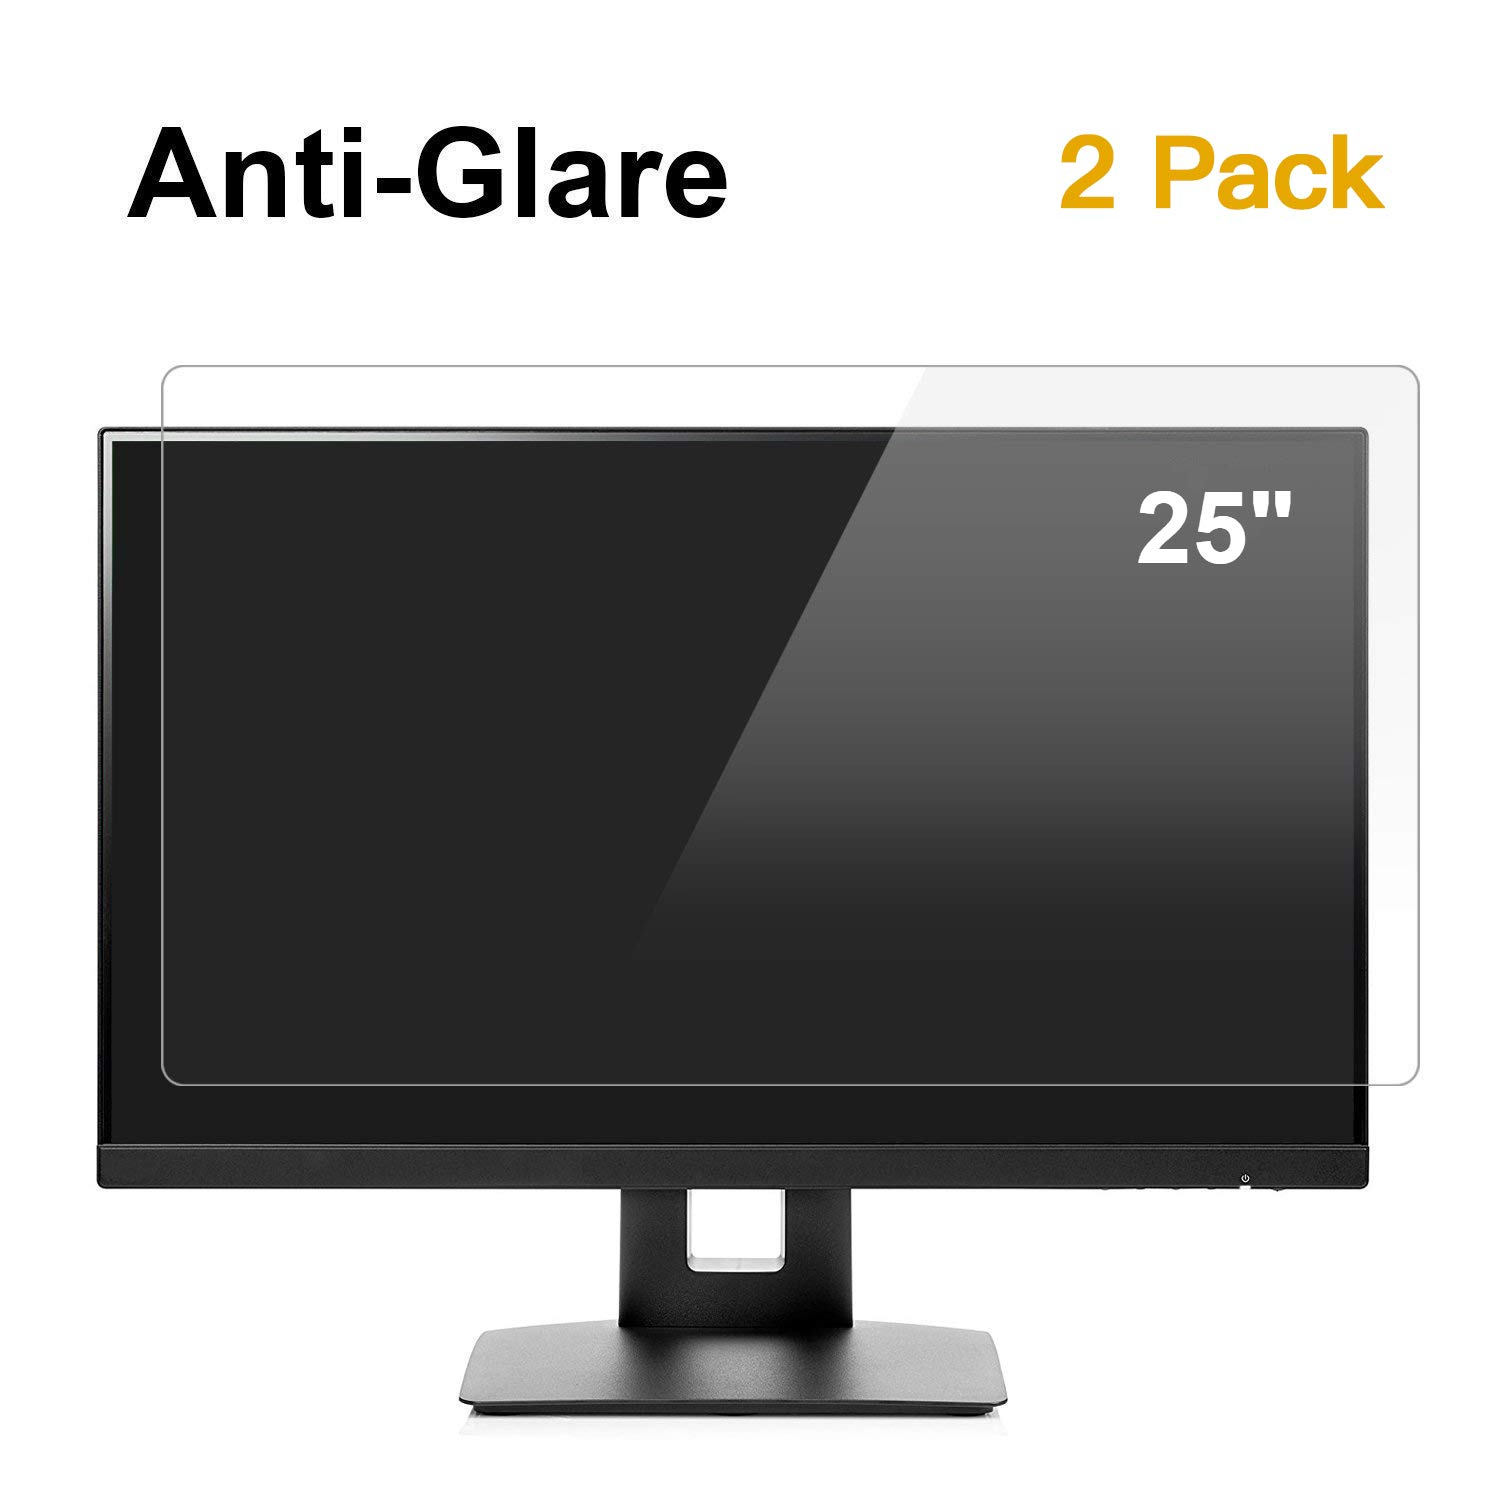 [2 PACK] 25 inch Anti Glare(Matte) Screen Protector for 25'' Widescreen Desktop with 16:9 Aspect Ratio Dell/Asus/Acer/ViewSonic/amsung/Aoc/HP Monitor